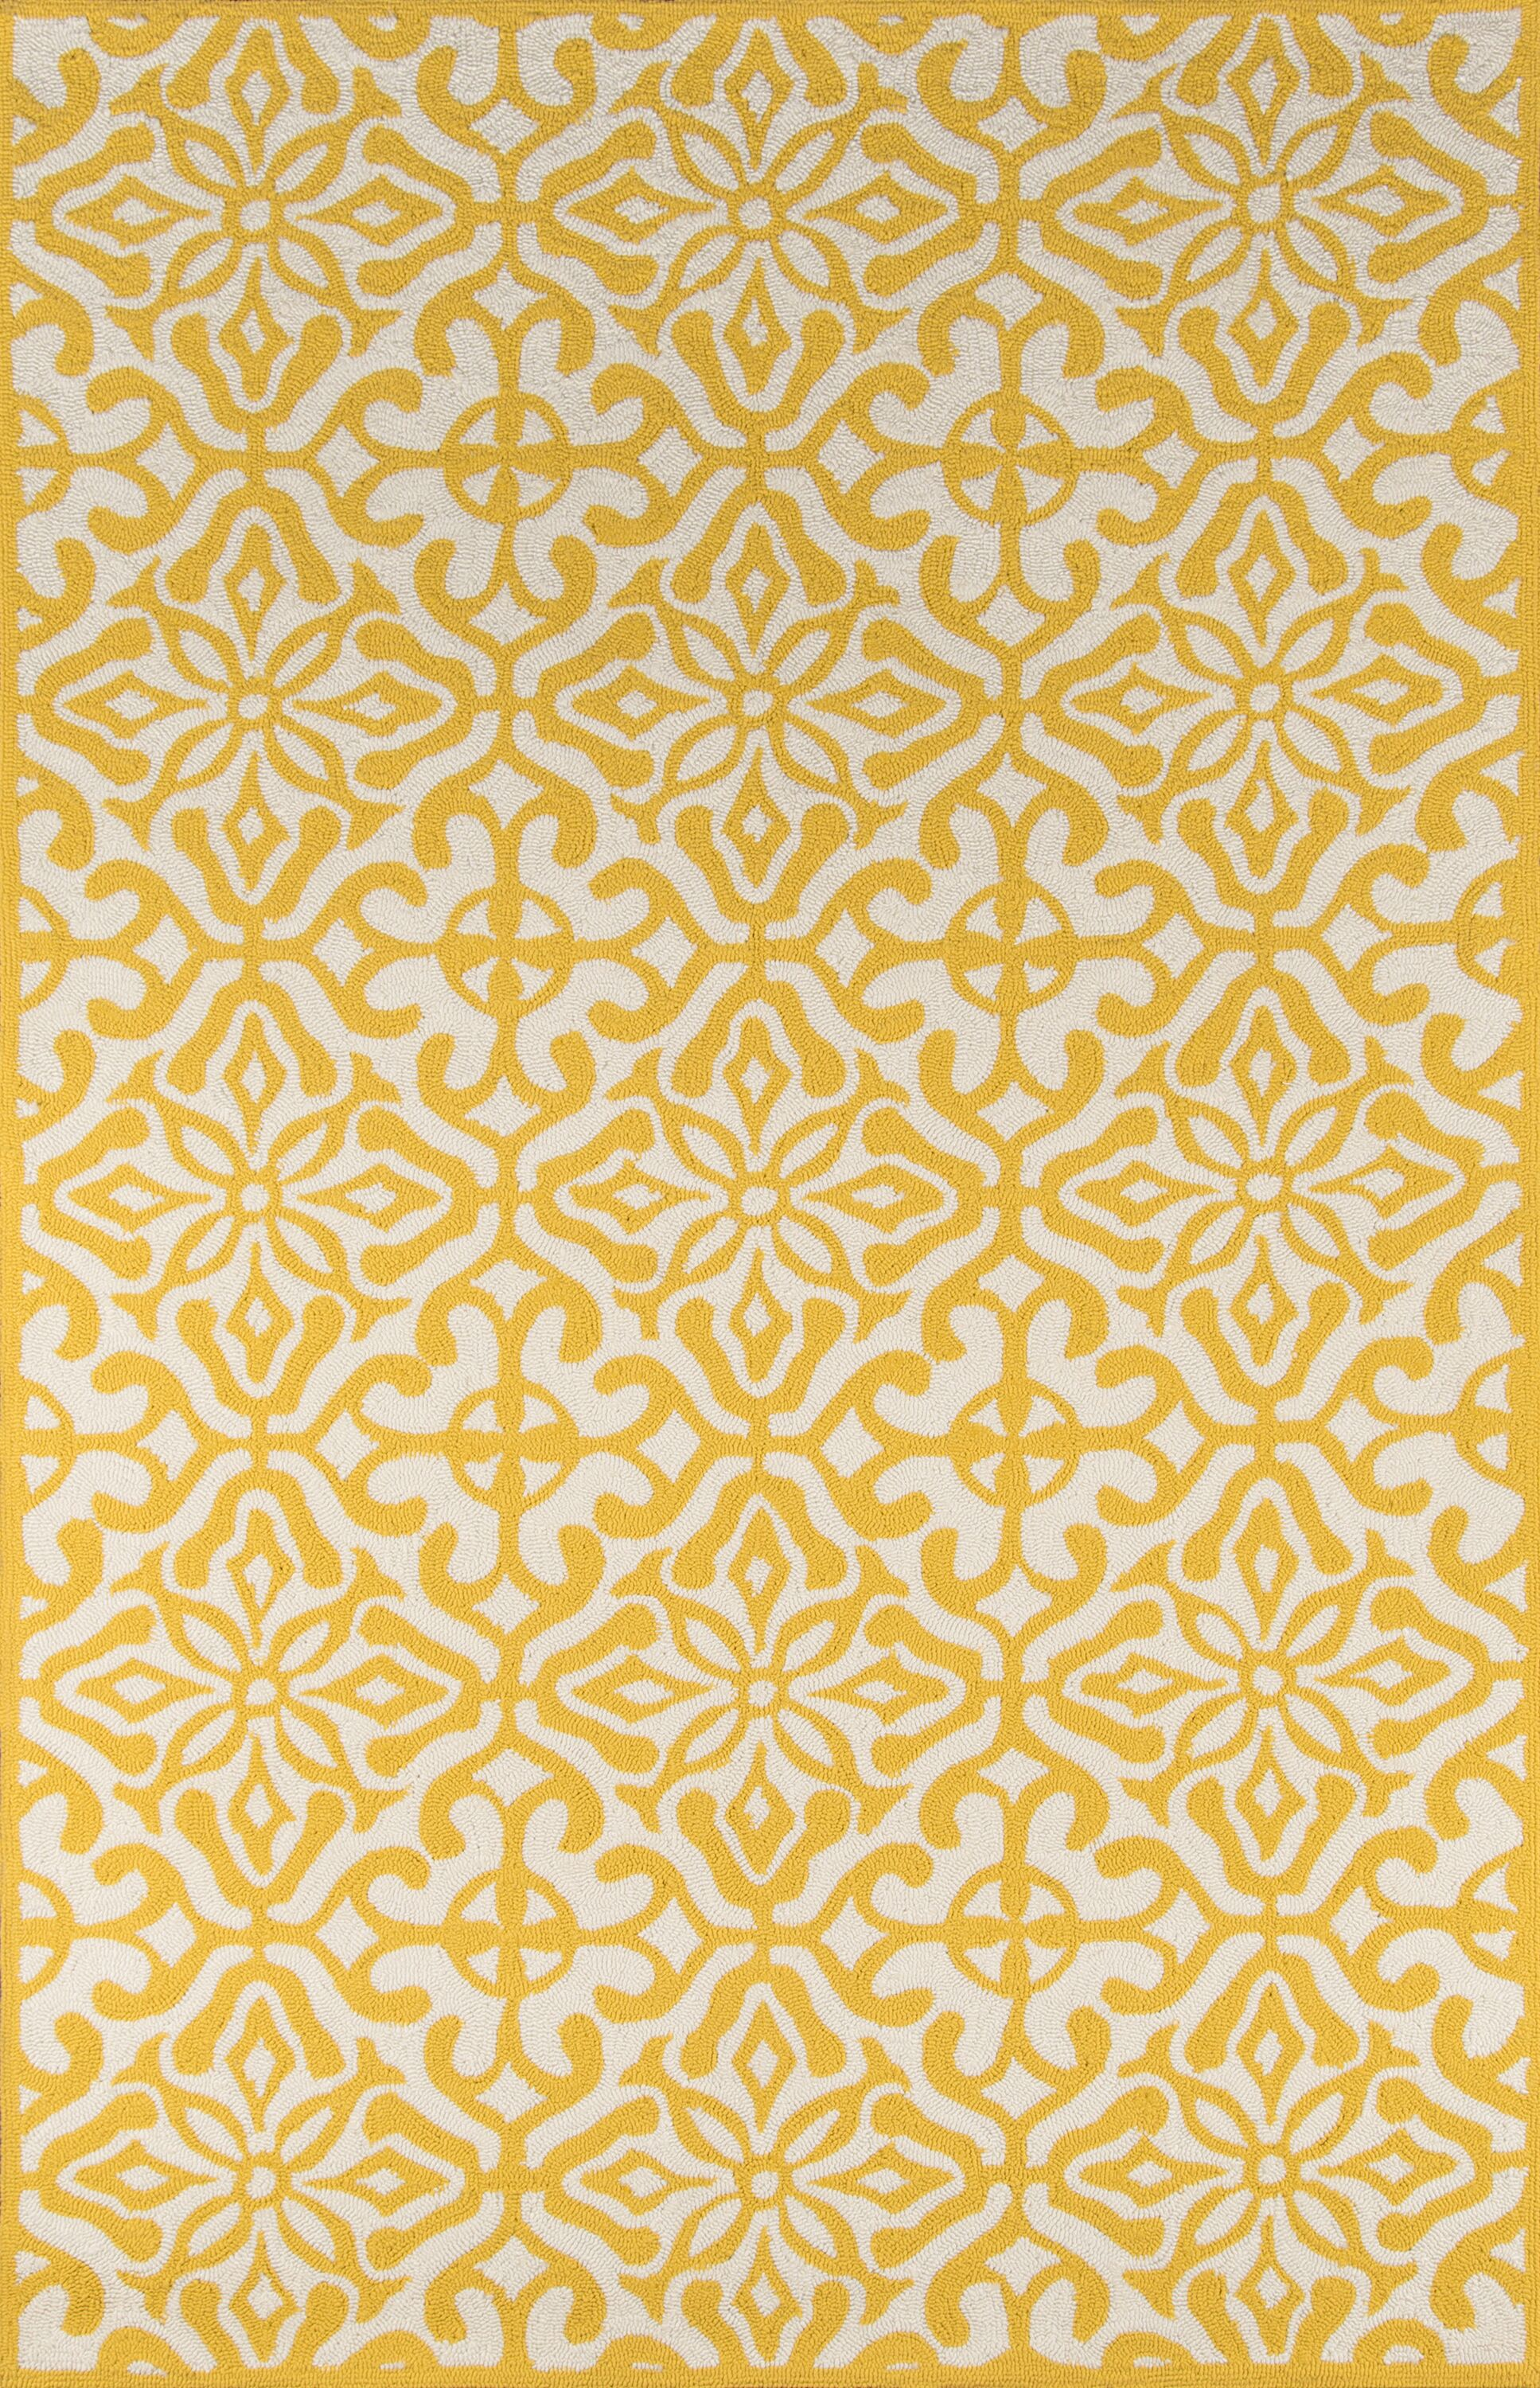 St James Yellow/White Outdoor Area Rug Rug Size: Rectangle 3'9